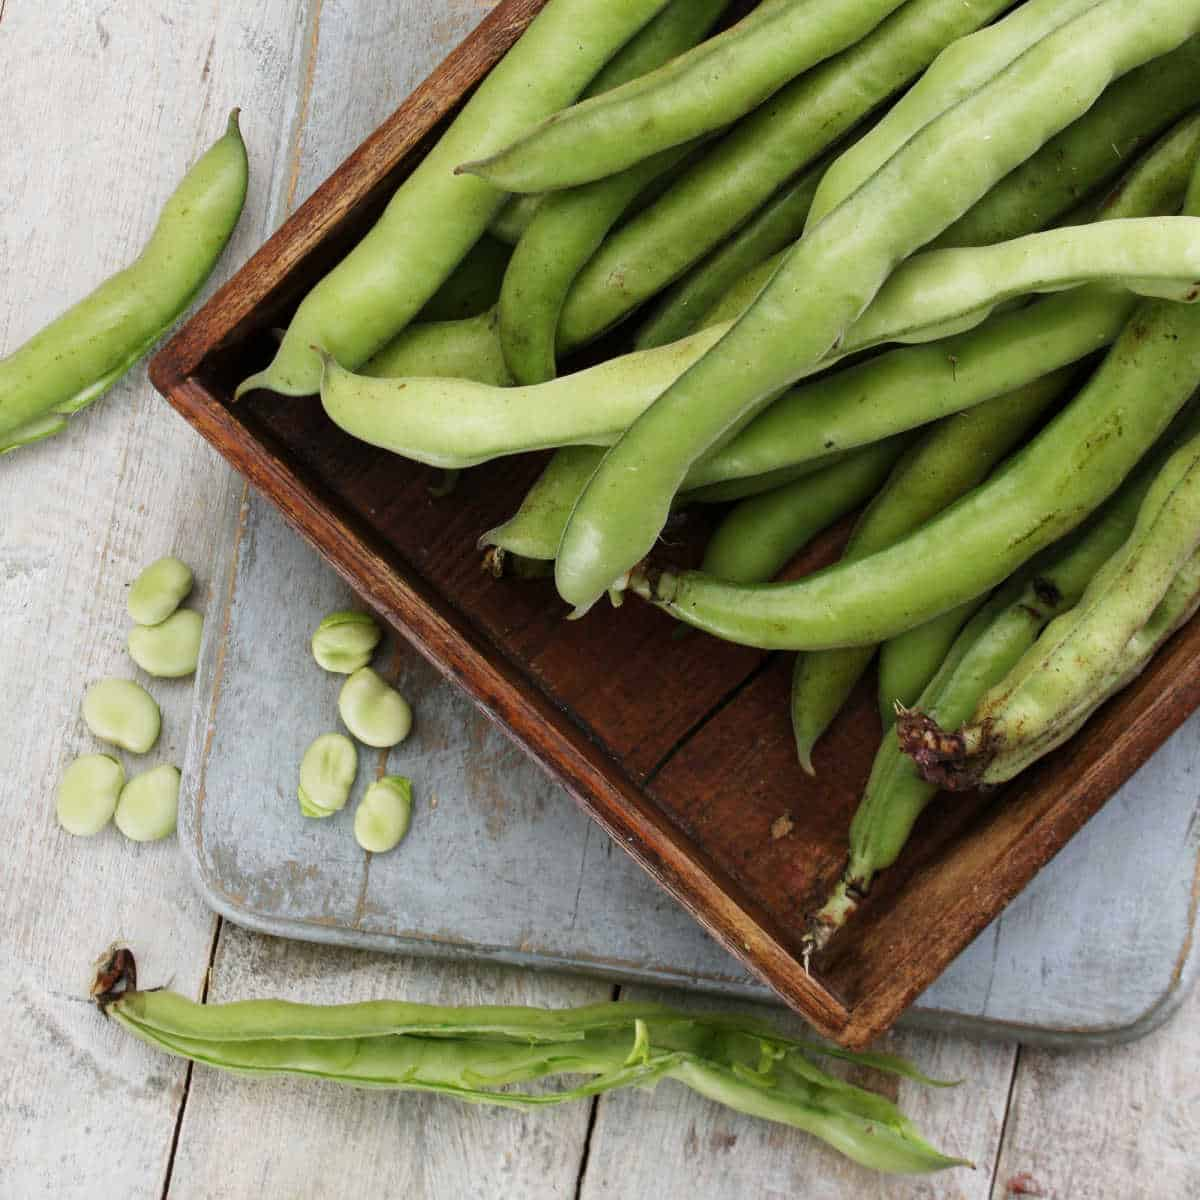 Broad beans on a tray and table.